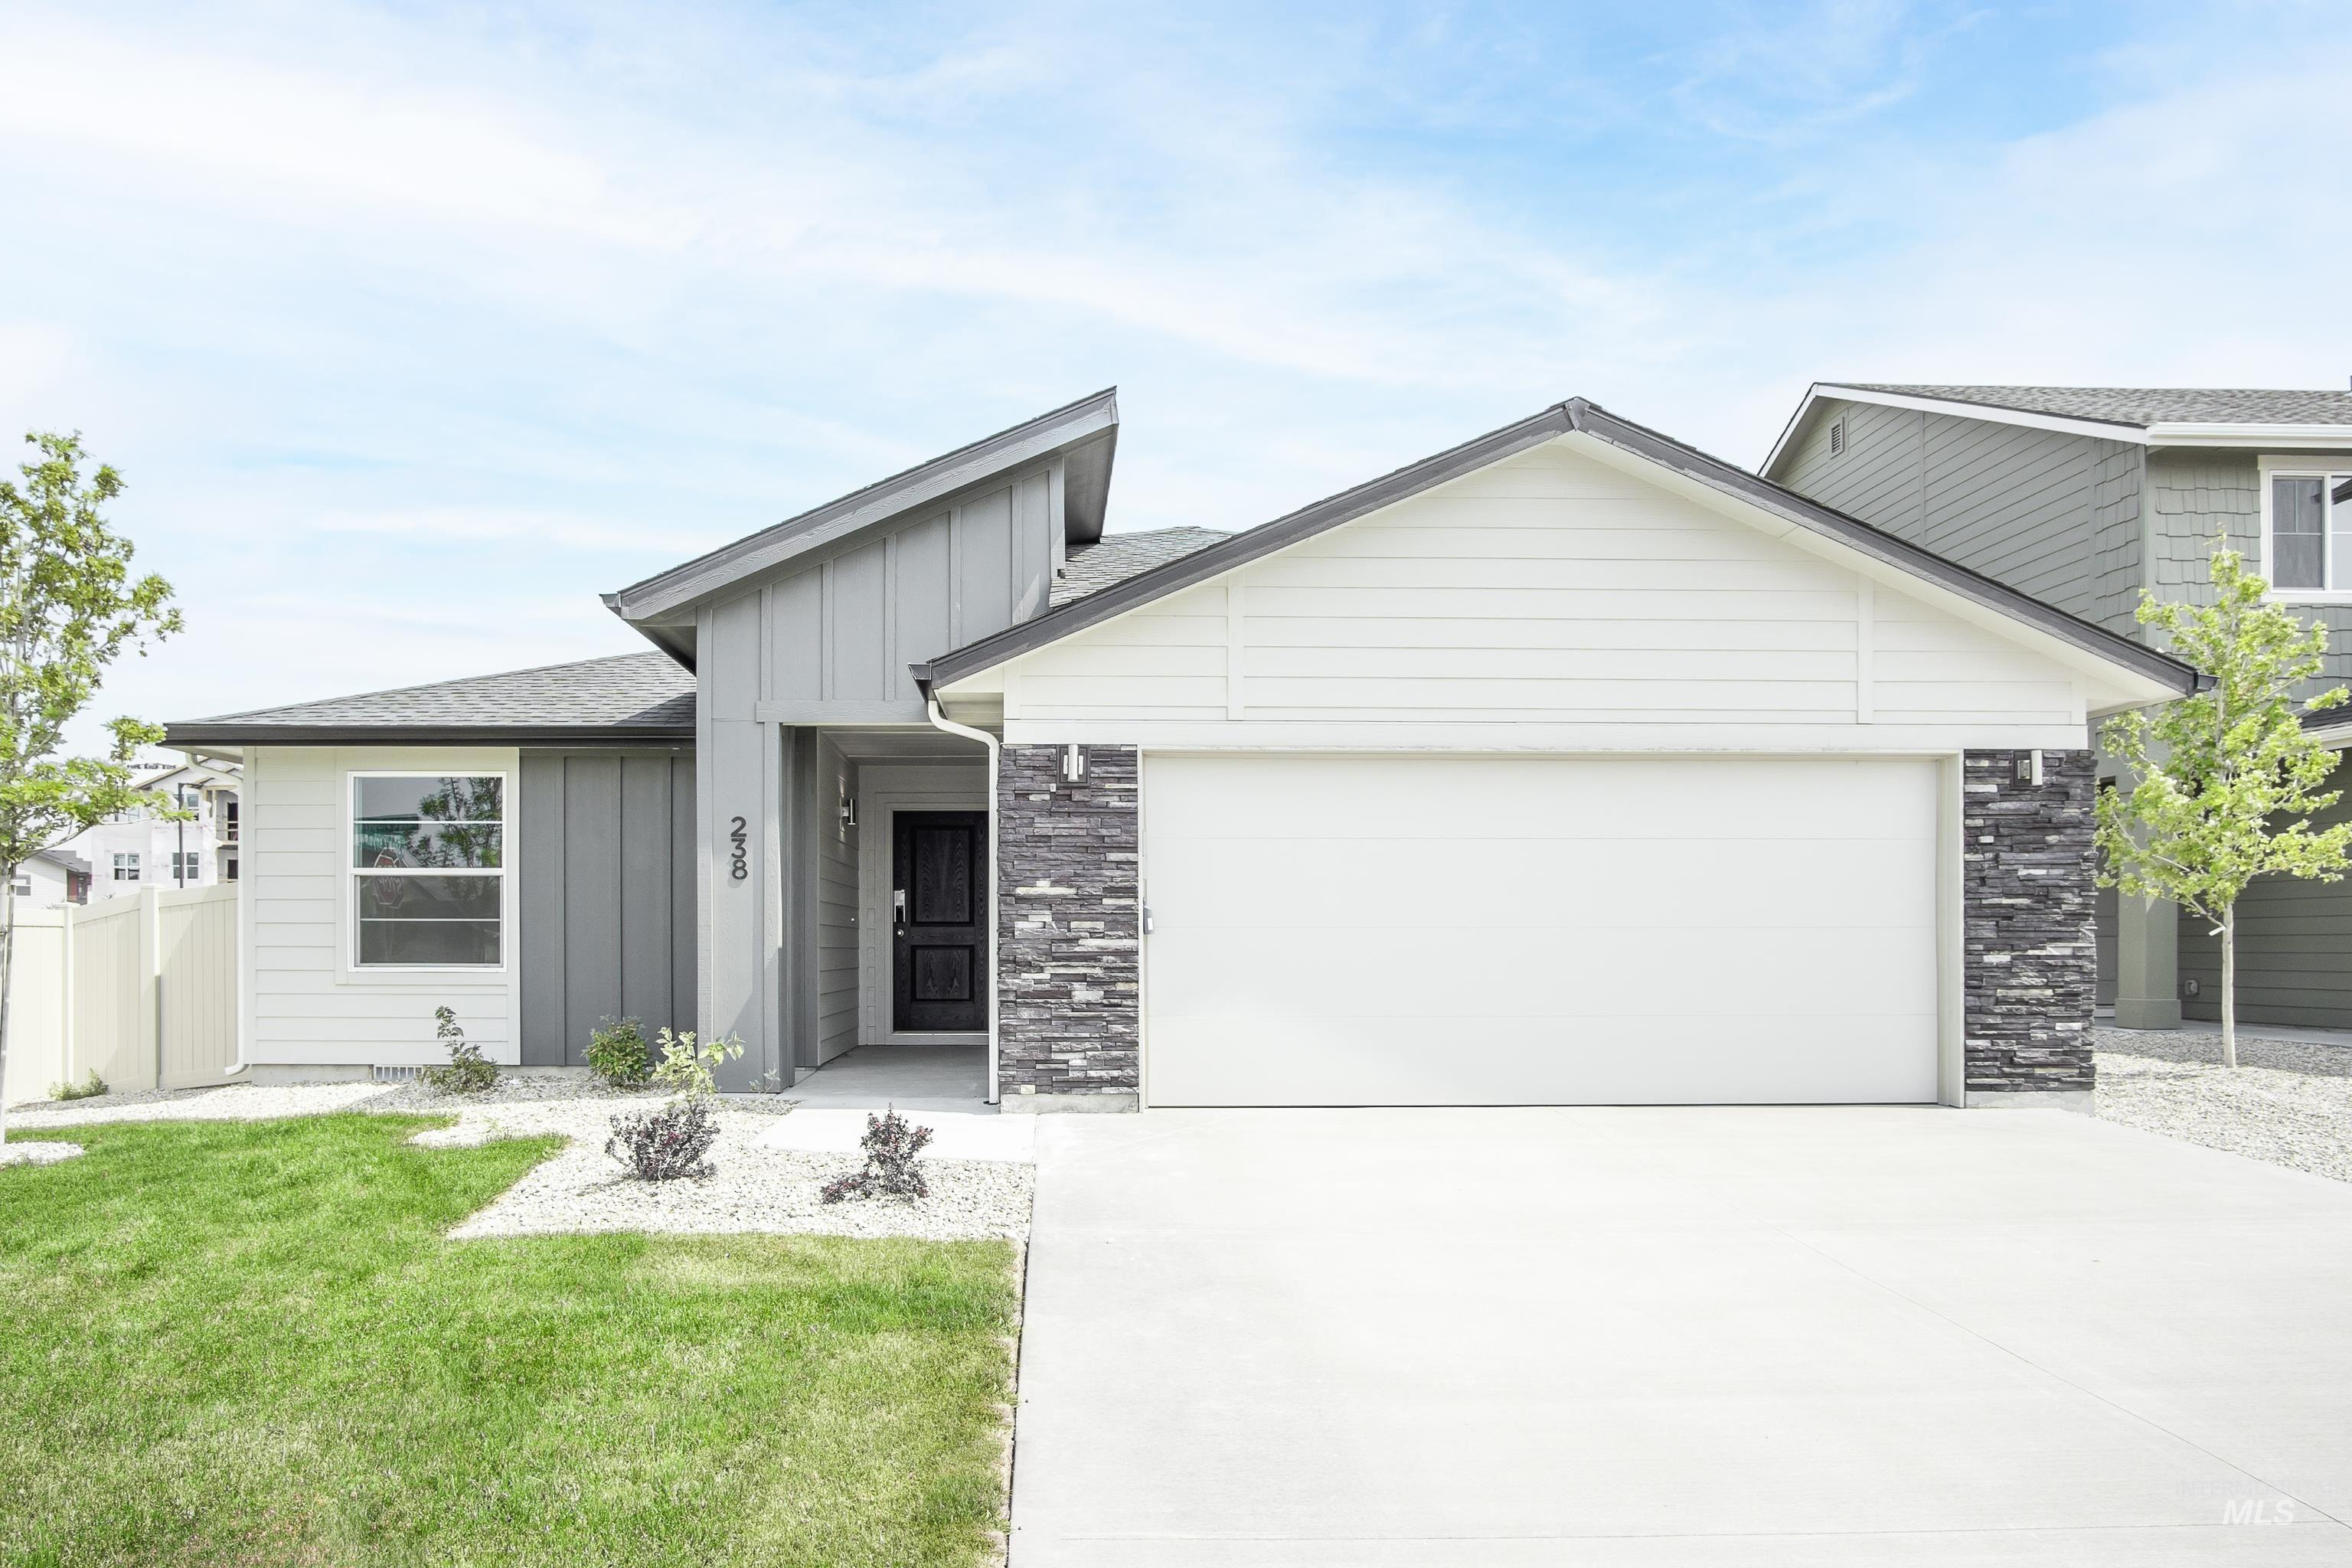 Get $25k with our Buy Now, Get More Promo NOW thru 7/31. Want to tour this home NOW? Get on-demand access with Tour Now! Welcome to the new Bennett 1694, a single level dream home just waiting for you! Your master suite awaits w/ a walk in closet, while your two additional bedrooms & flex room are just around the corner. Includes an open living room, dining, and kitchen or spill out onto your back patio for some fresh air. Home has ss appliances, granite kitchen counter, & more. Photos are similar. RCE-923.